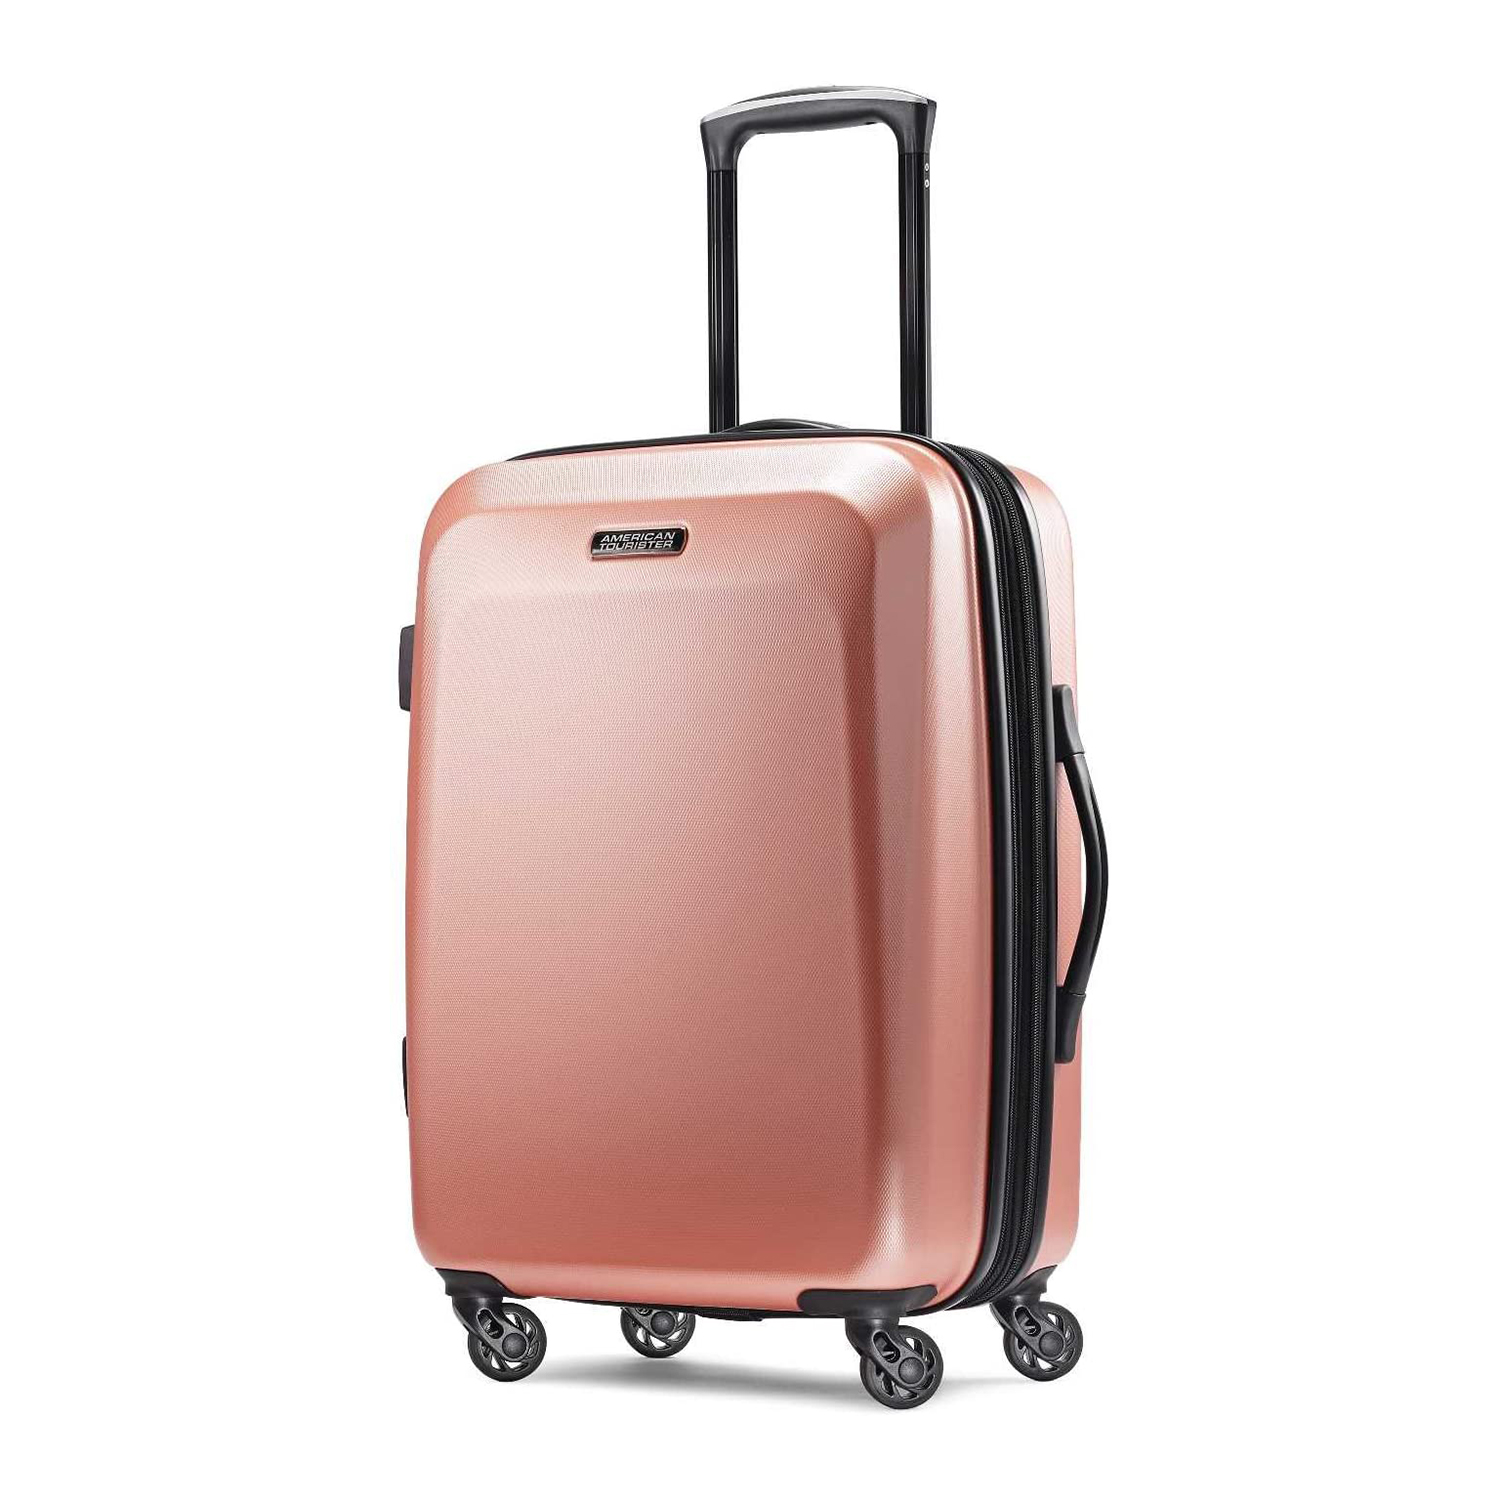 American Tourister Moonlight Hardside Expandable Luggage with Spinner Wheels